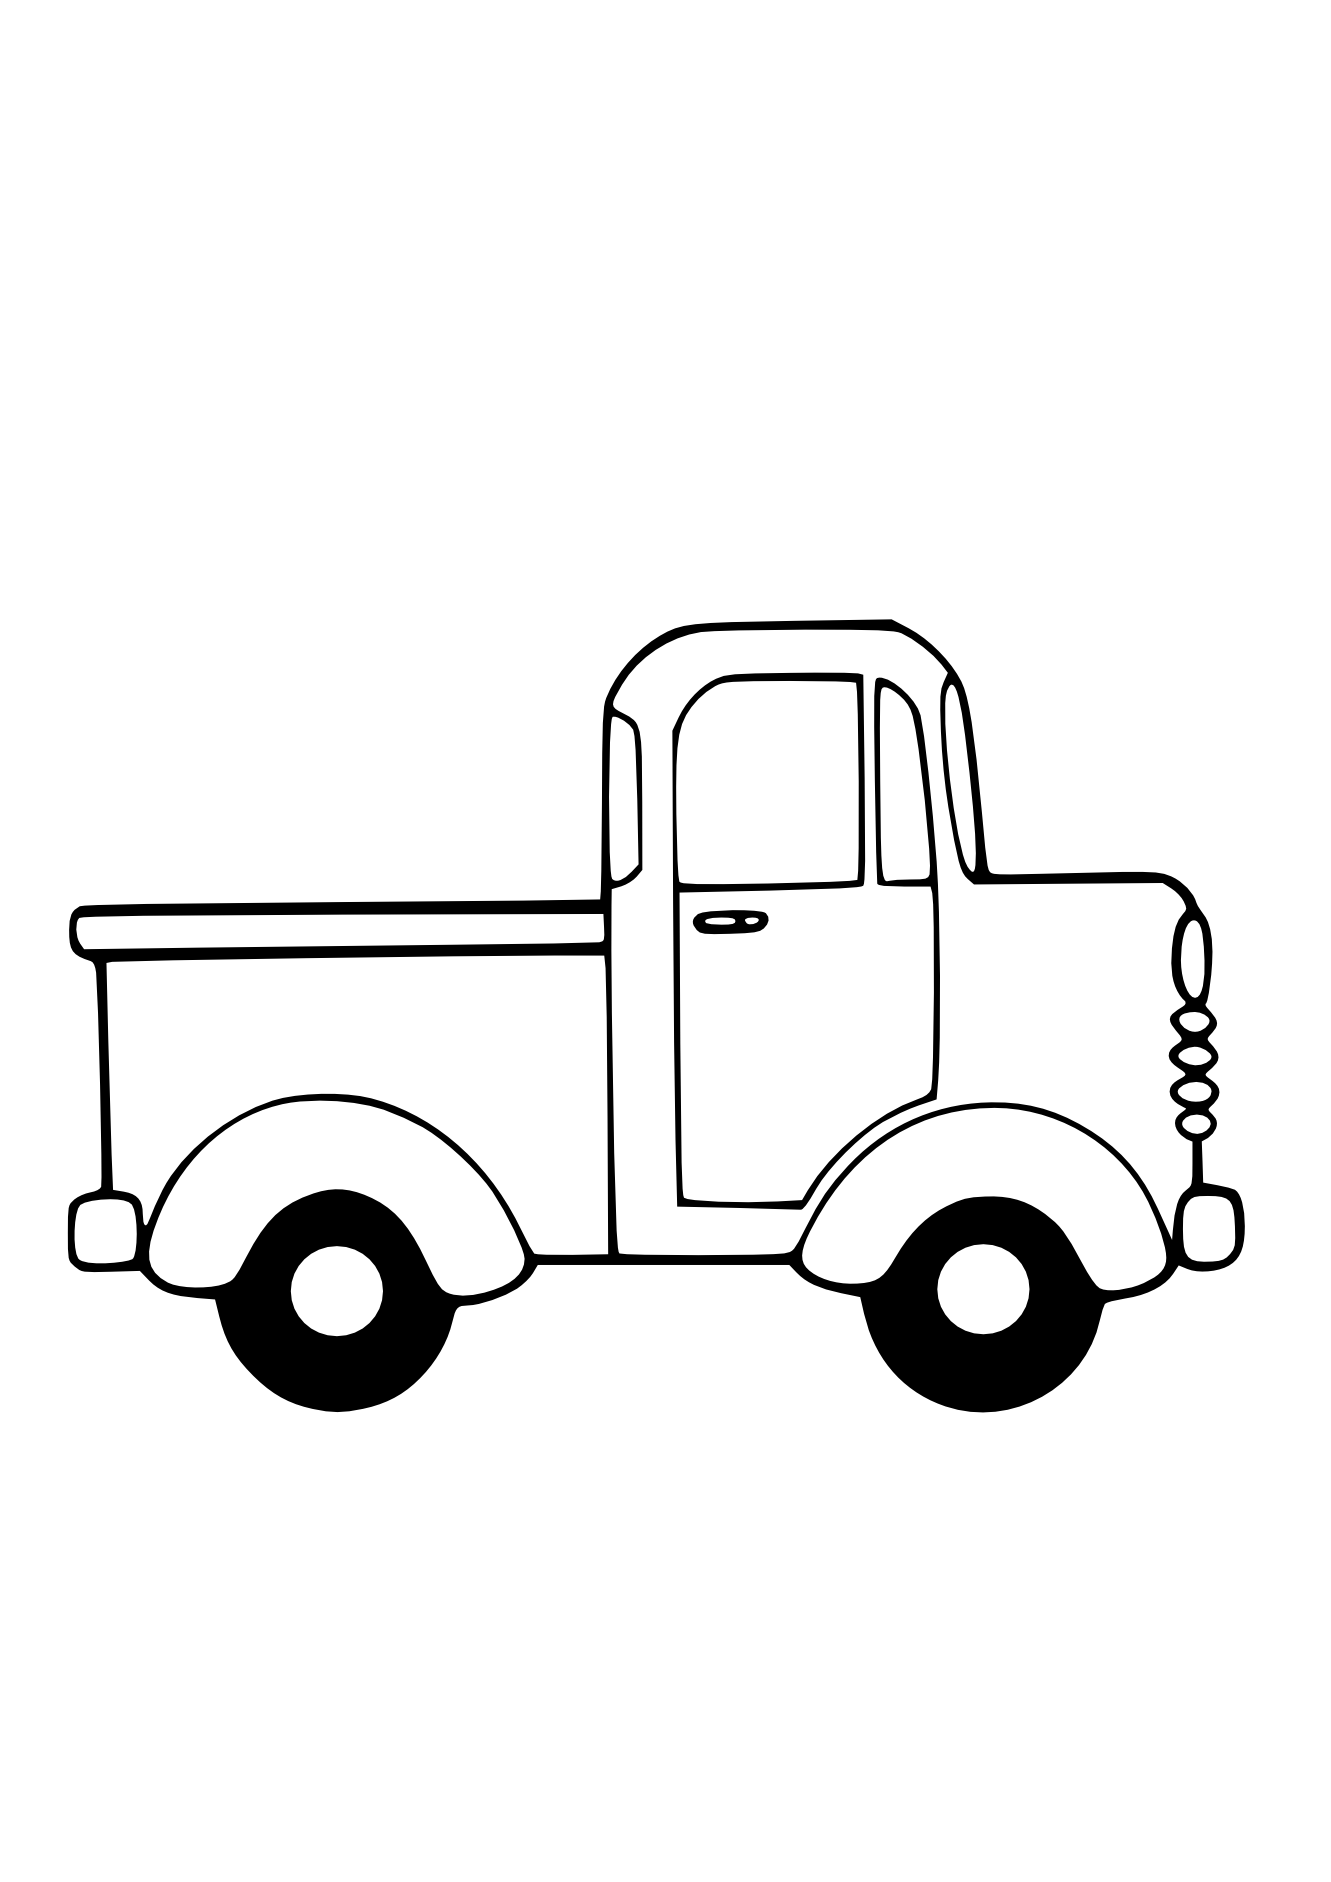 Country house clipart black and white clipart library stock Truck Black White Line Art Christmas Xmas Toy Scalable Vector ... clipart library stock